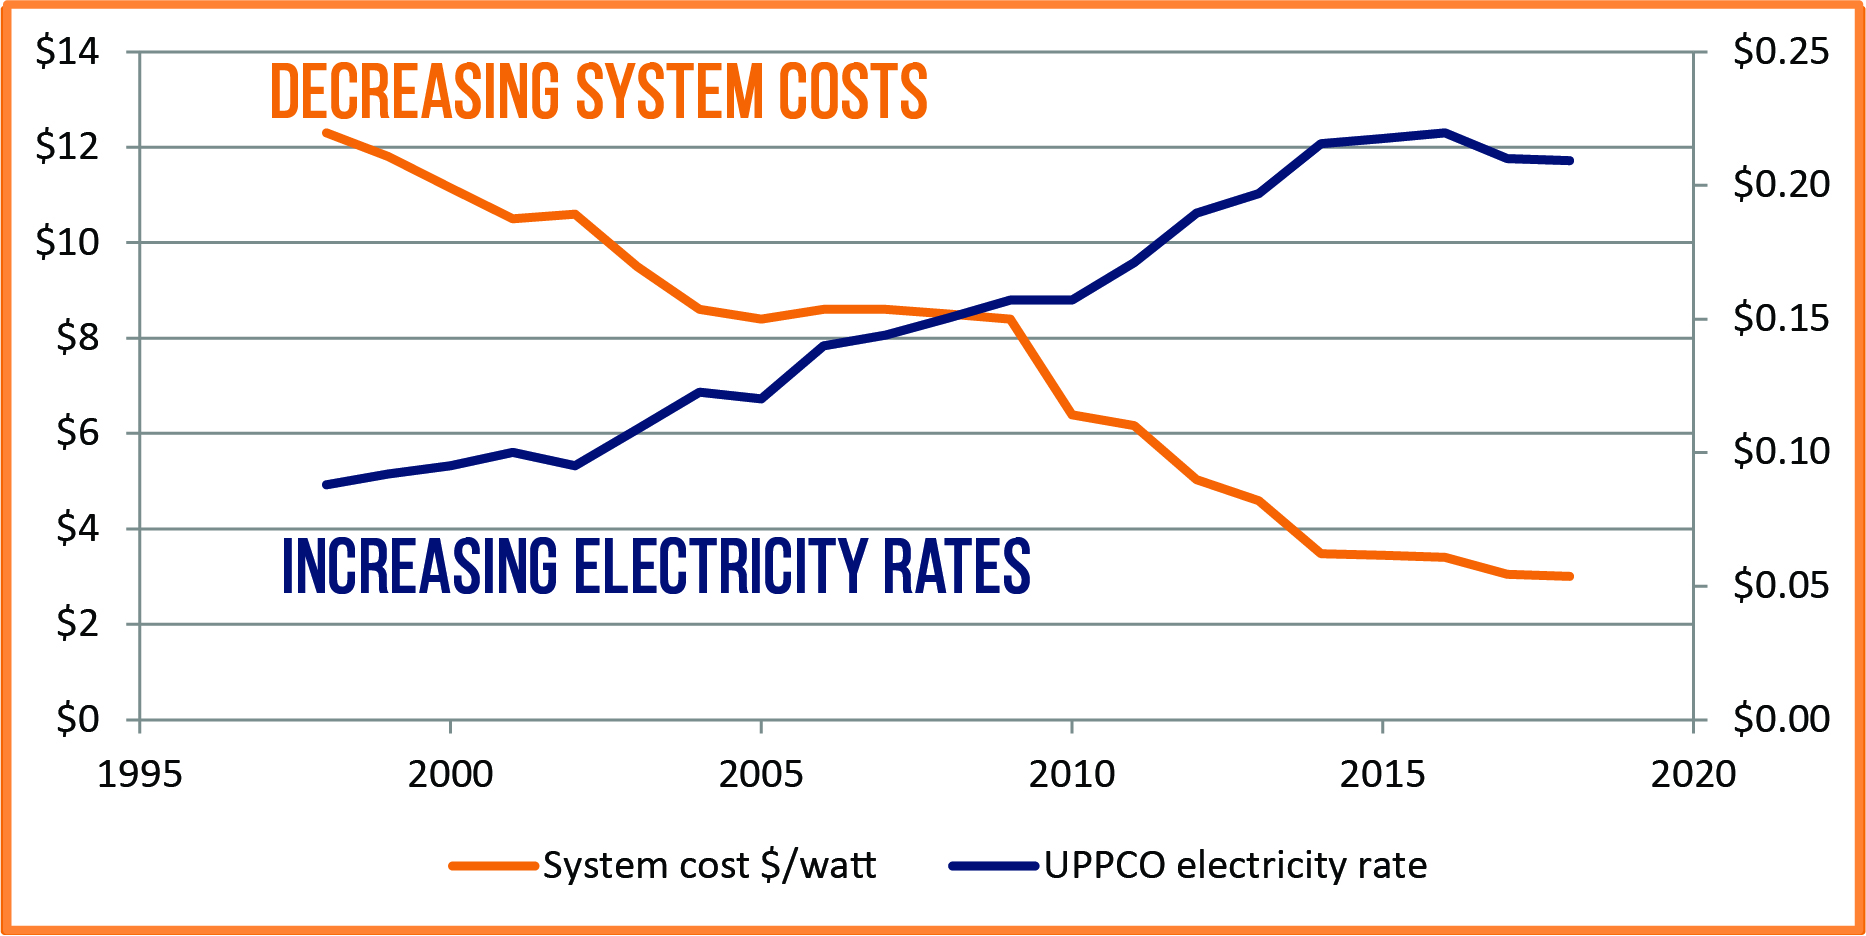 UPPCO utility rates from the  MI public service commision . Solar installation costs from the Lawrence Berkeley Lab's  Tracking the Sun .